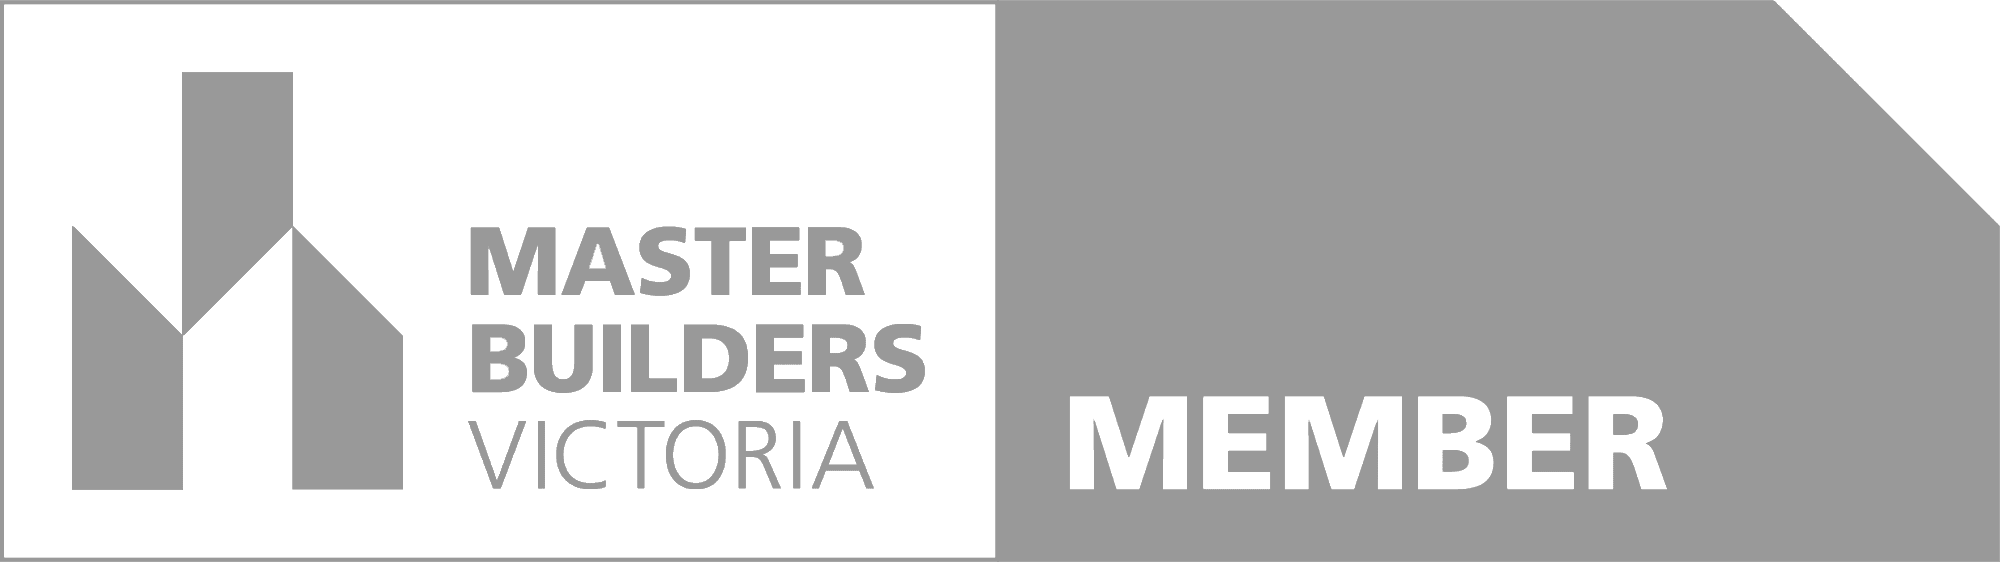 Official Members of Master Builders Victoria